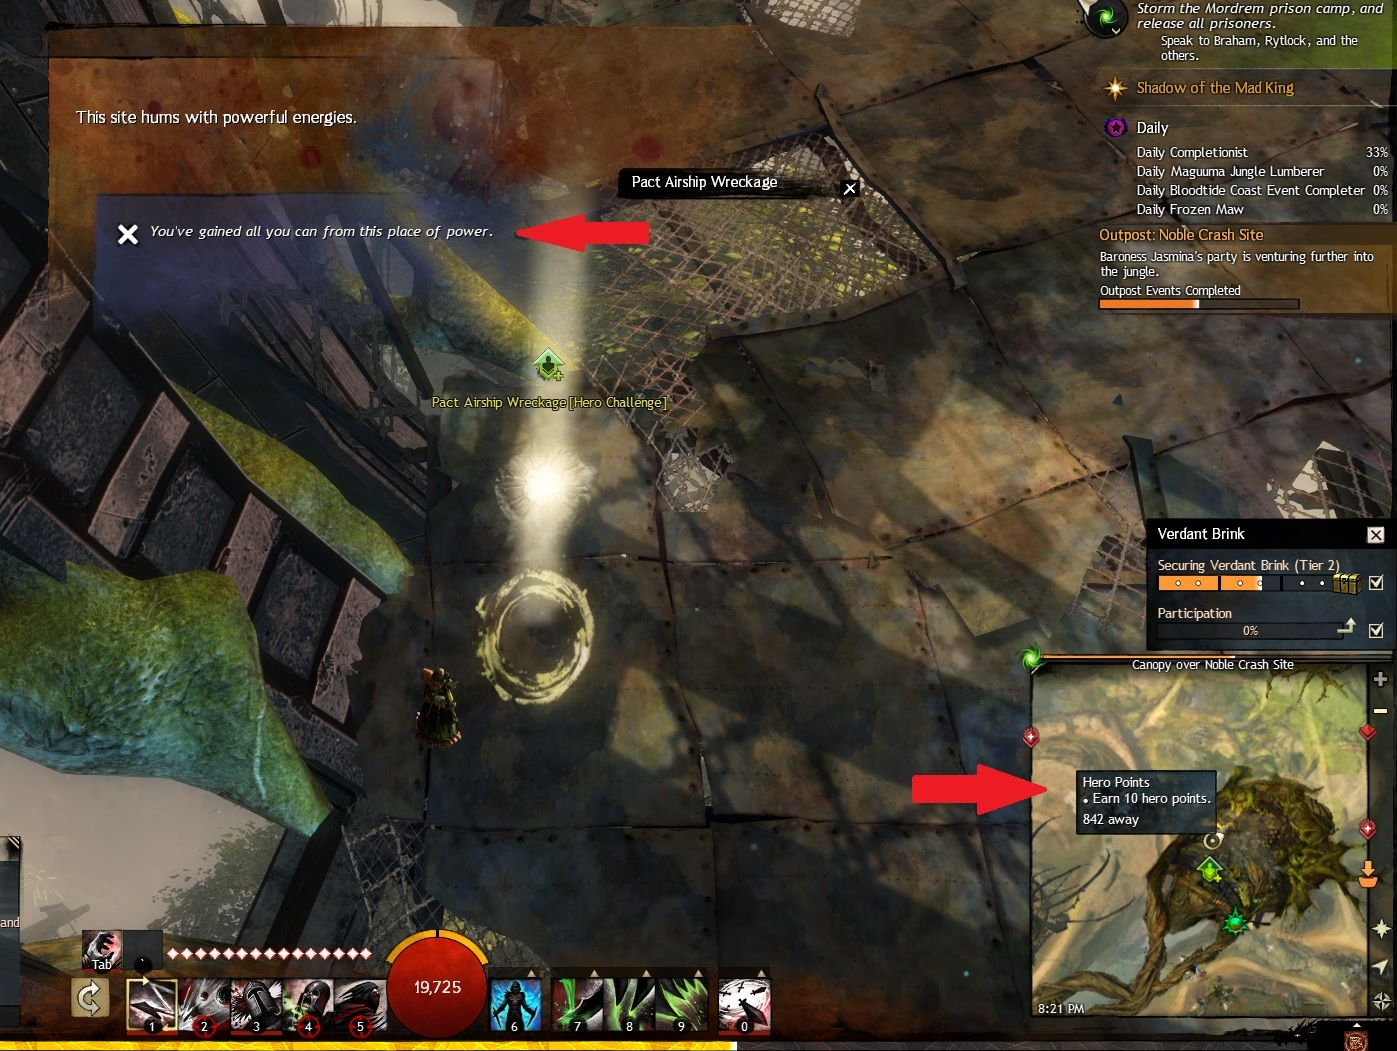 Guild Wars 2 Forum - Bugs: Game, Forum, Website - Issue Reports ...